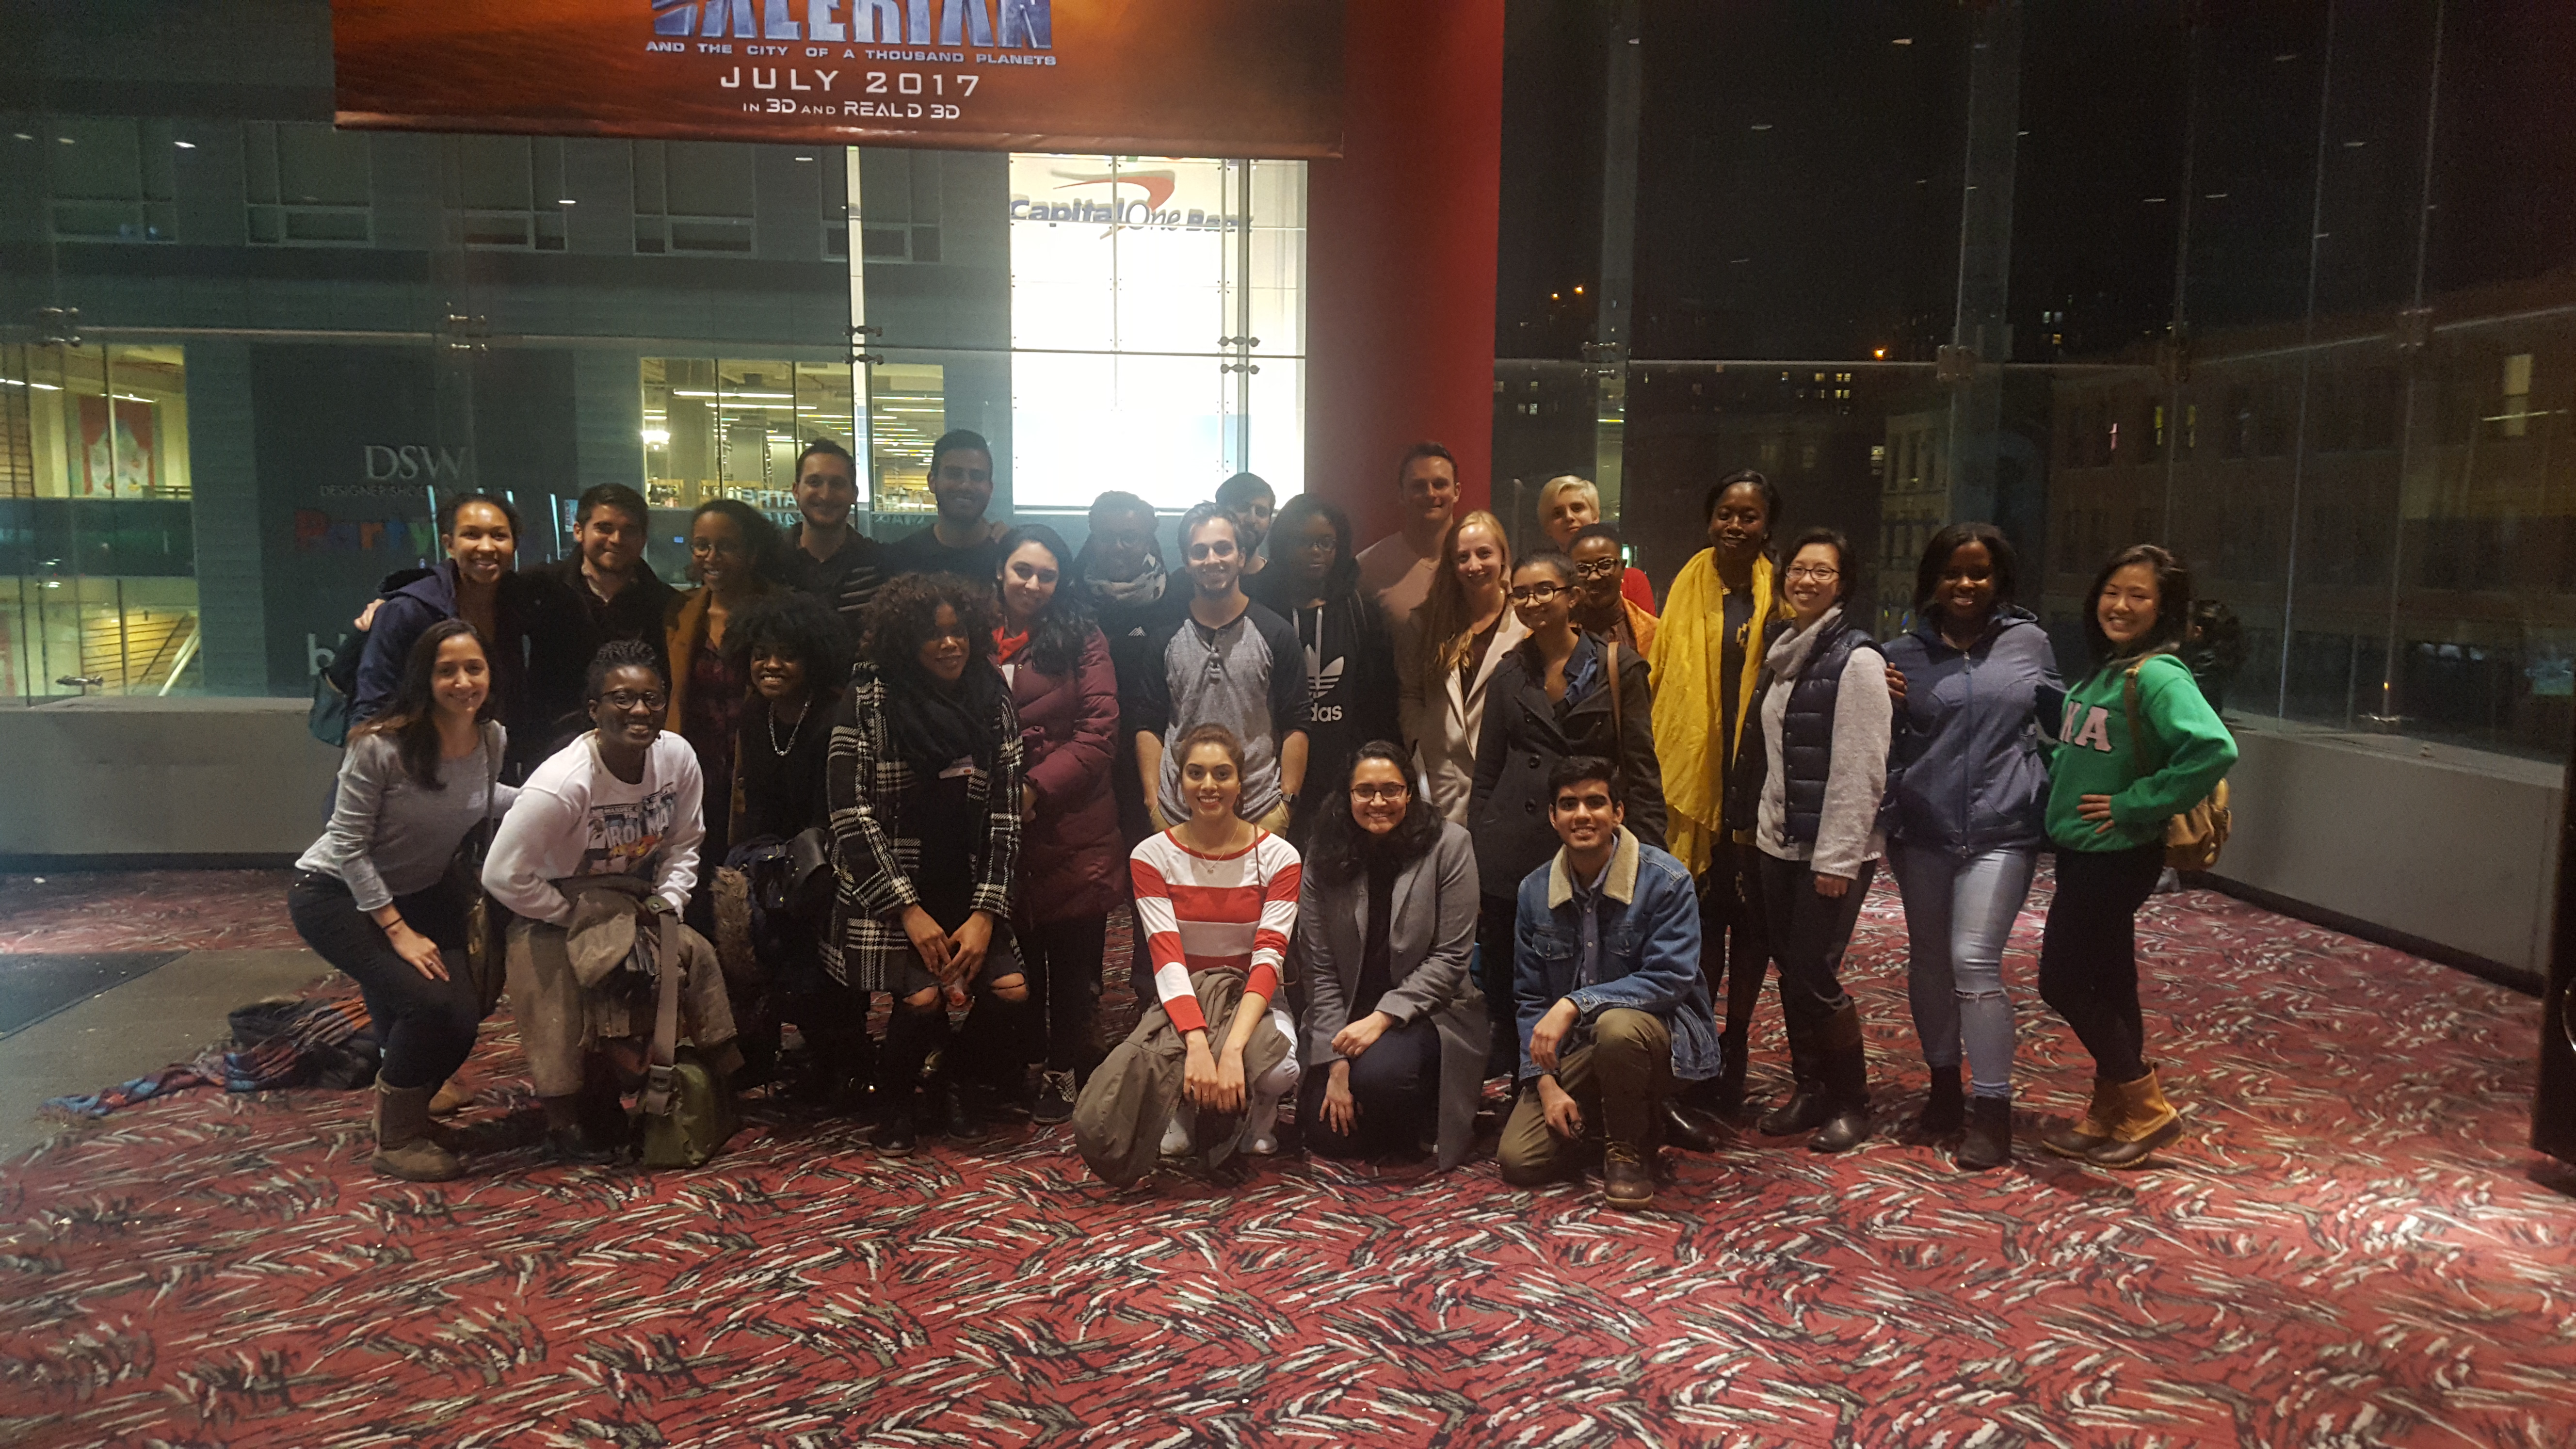 Group Photo after Hidden Figures Movie Night